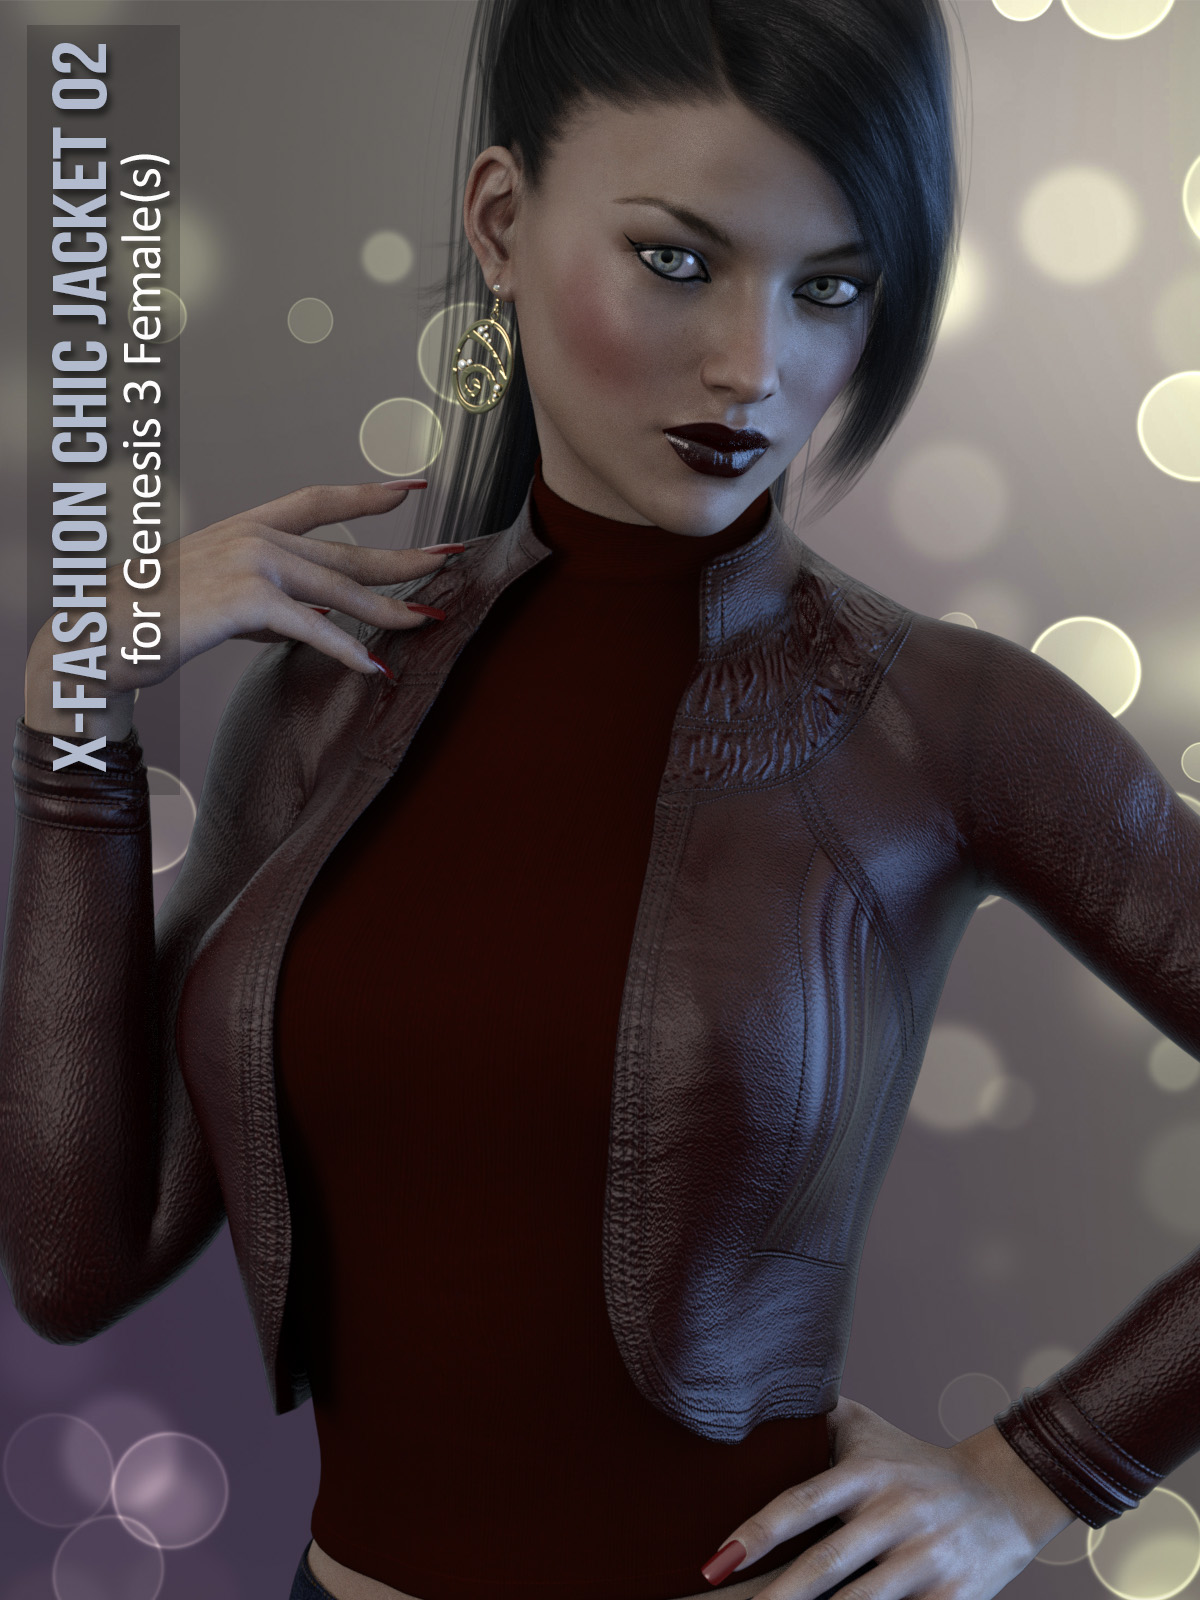 X-Fashion Chic Jacket for Genesis 3 Female(s) 3D Figure Assets xtrart ... b2a731ec6